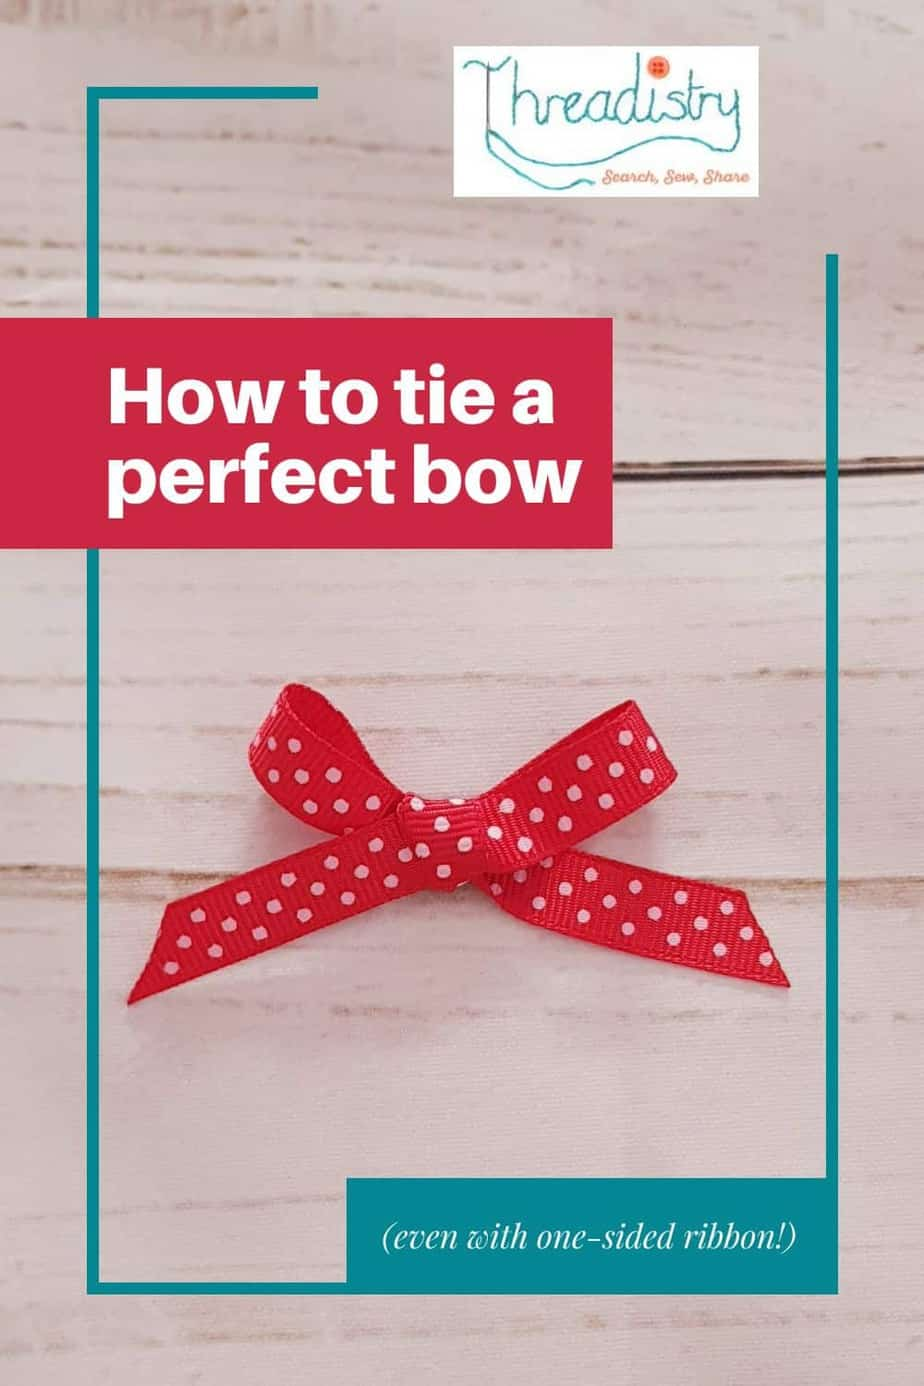 """Picture of red ribbon bow with text overlay """"How to tie a perfect bow (even with one-sided ribbon)"""""""